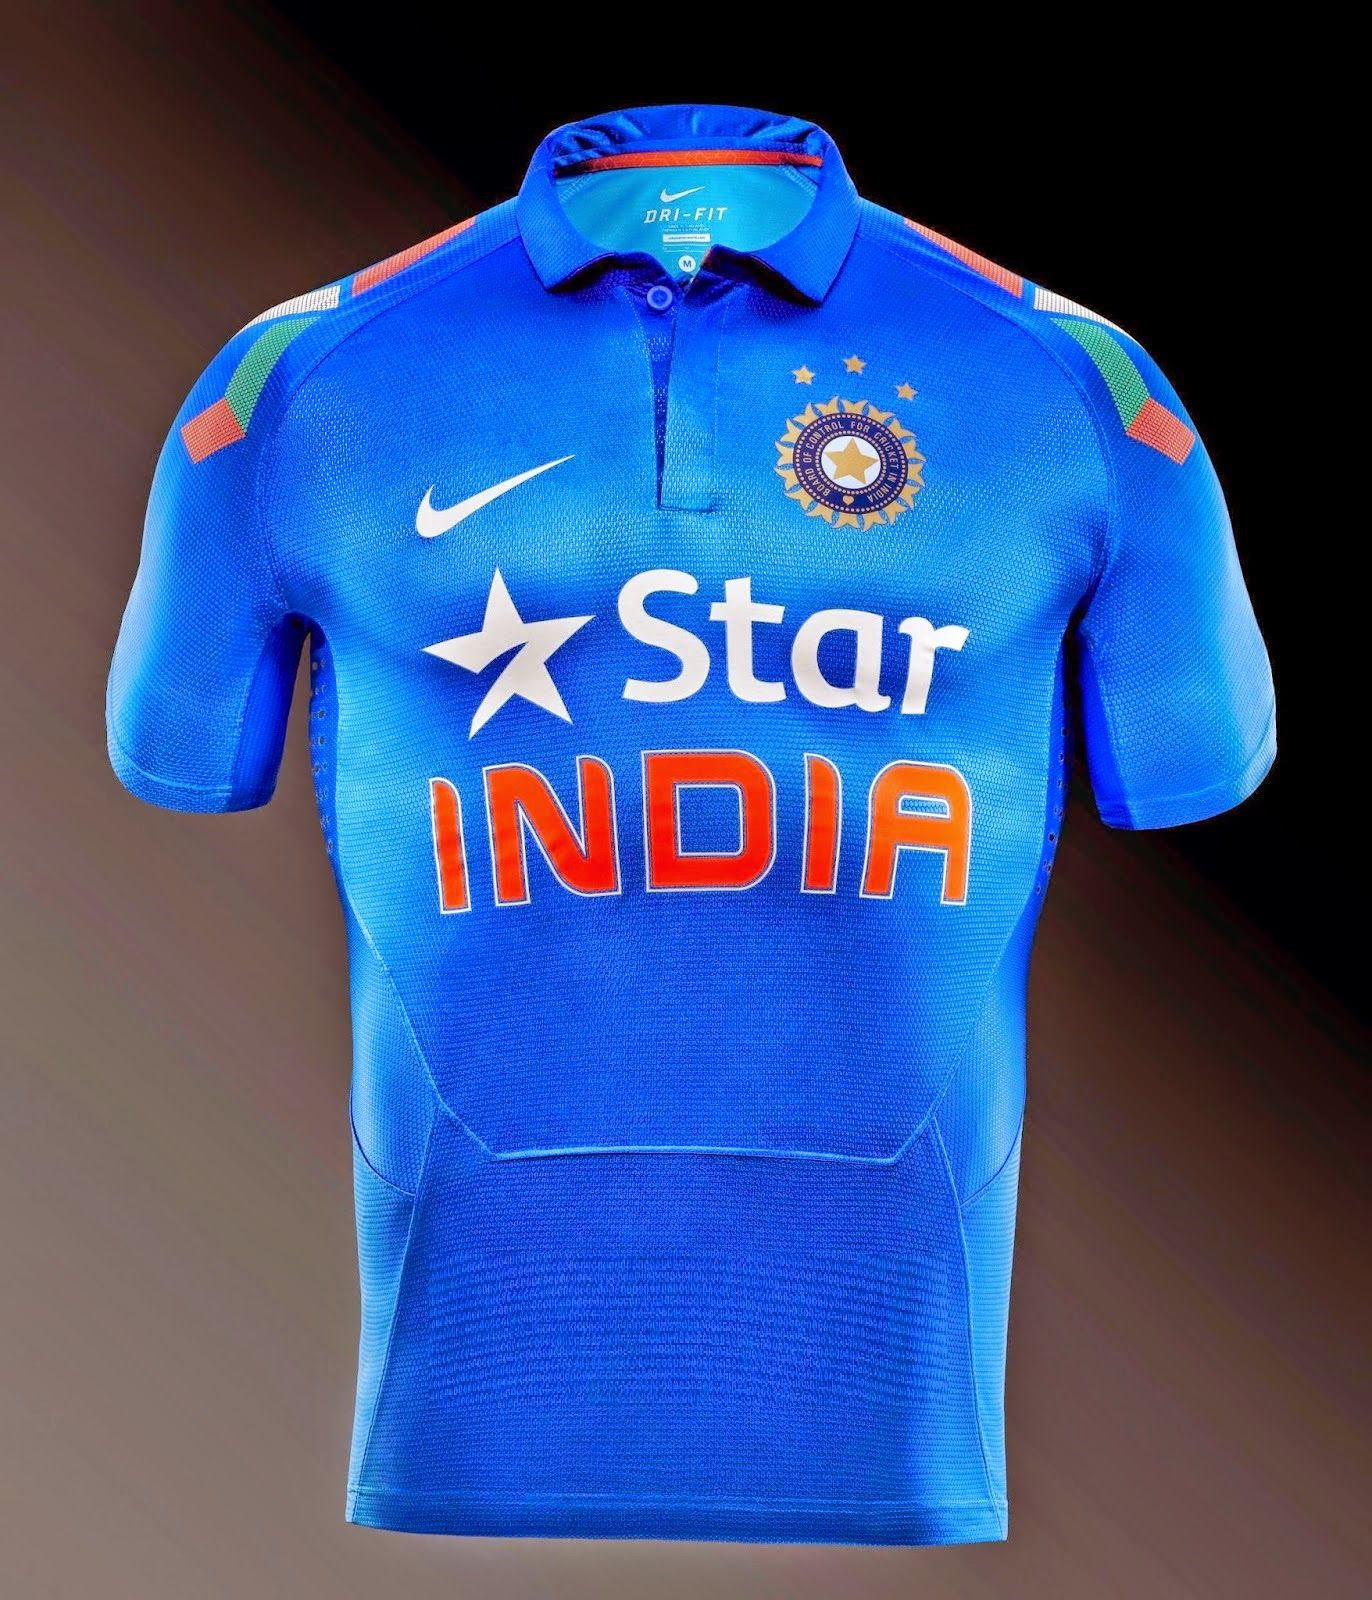 India S Cricket World Cup 2015 Kit Jersey Cricket World Cup Team Jersey Star India